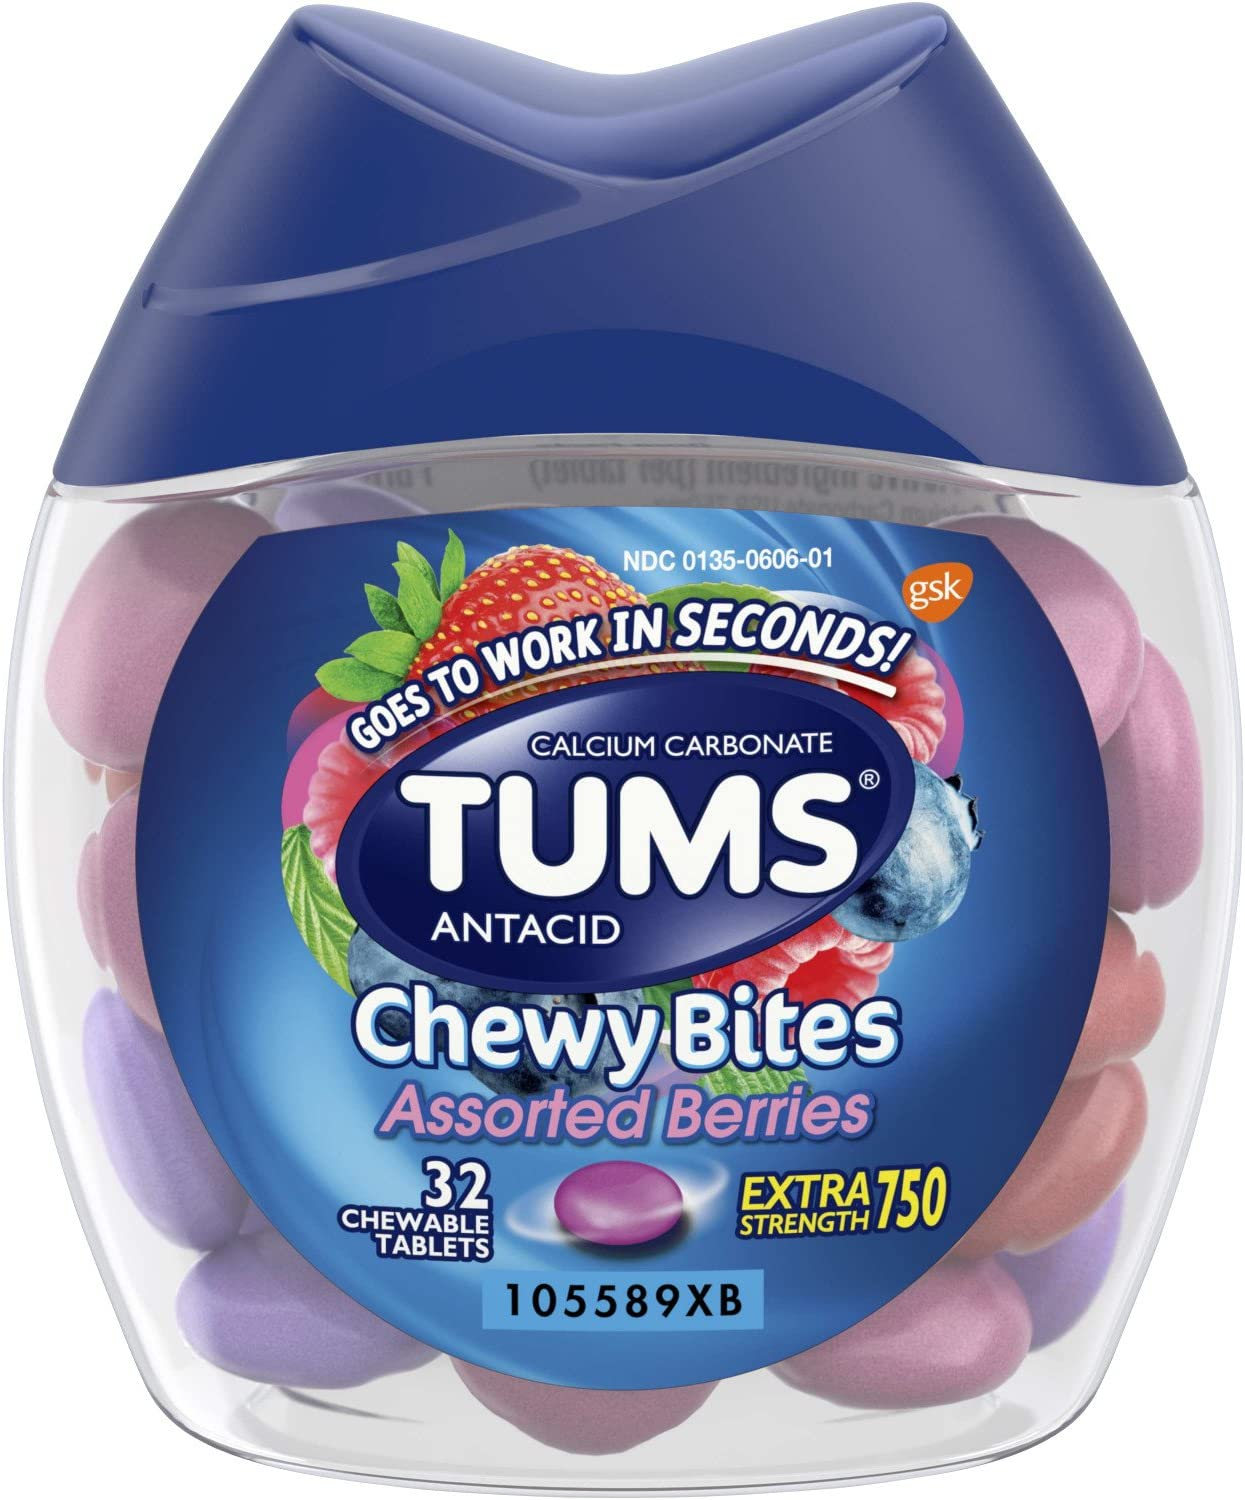 TUMS Chewy Bites Assorted Berries Antacid Hard Shell Chews for Heartburn Relief, 32 count